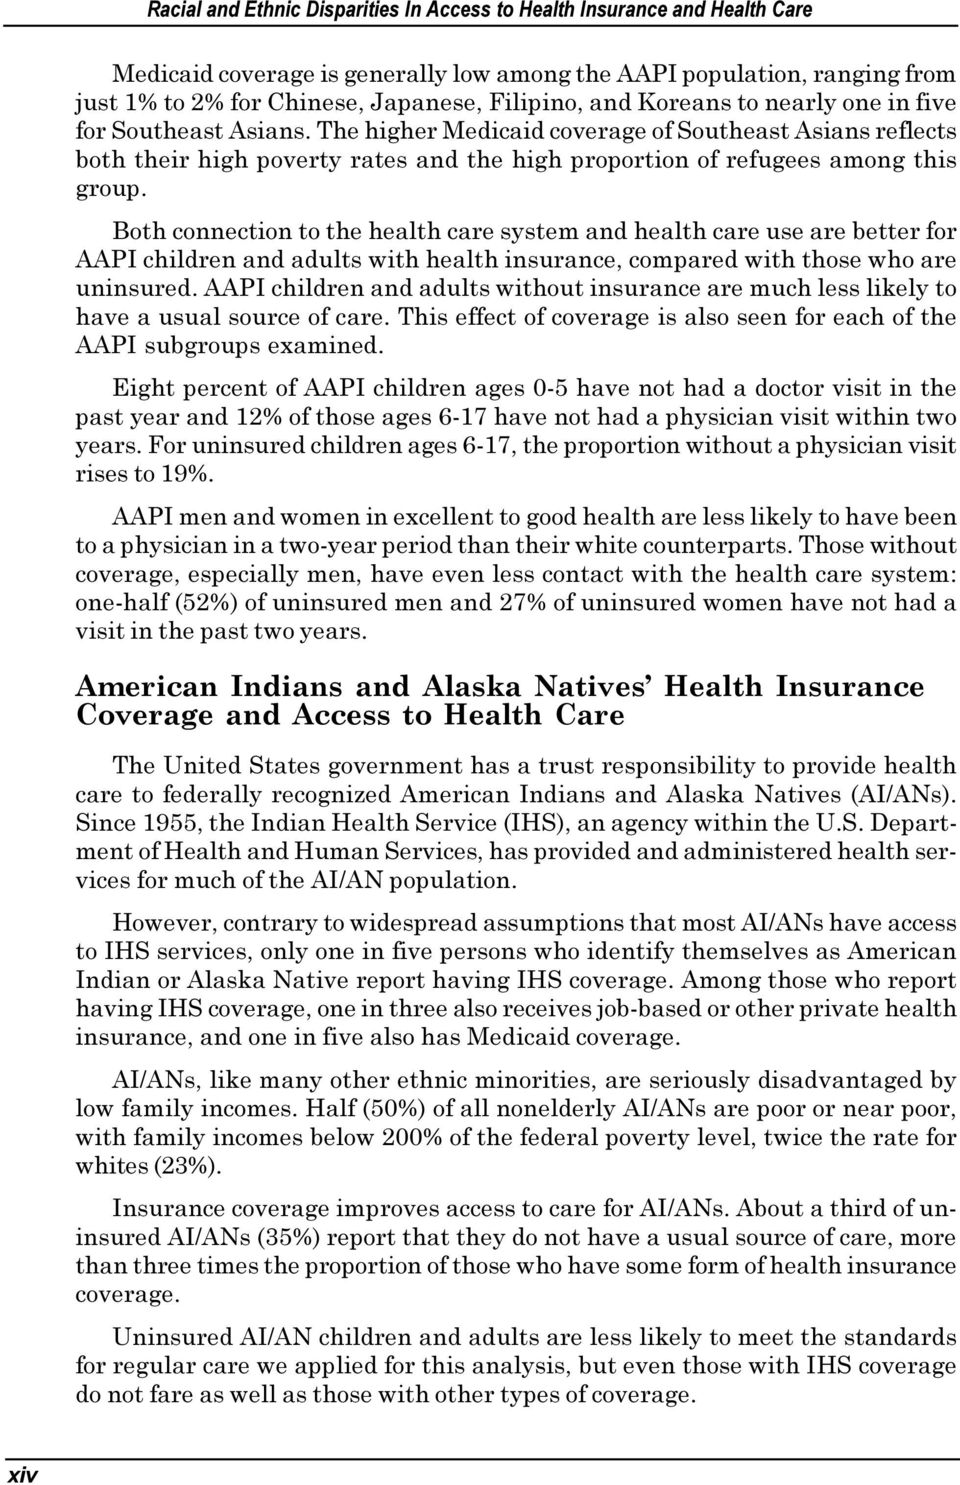 Both connection to the health care system and health care use are better for AAPI children and adults with health insurance, compared with those who are uninsured.